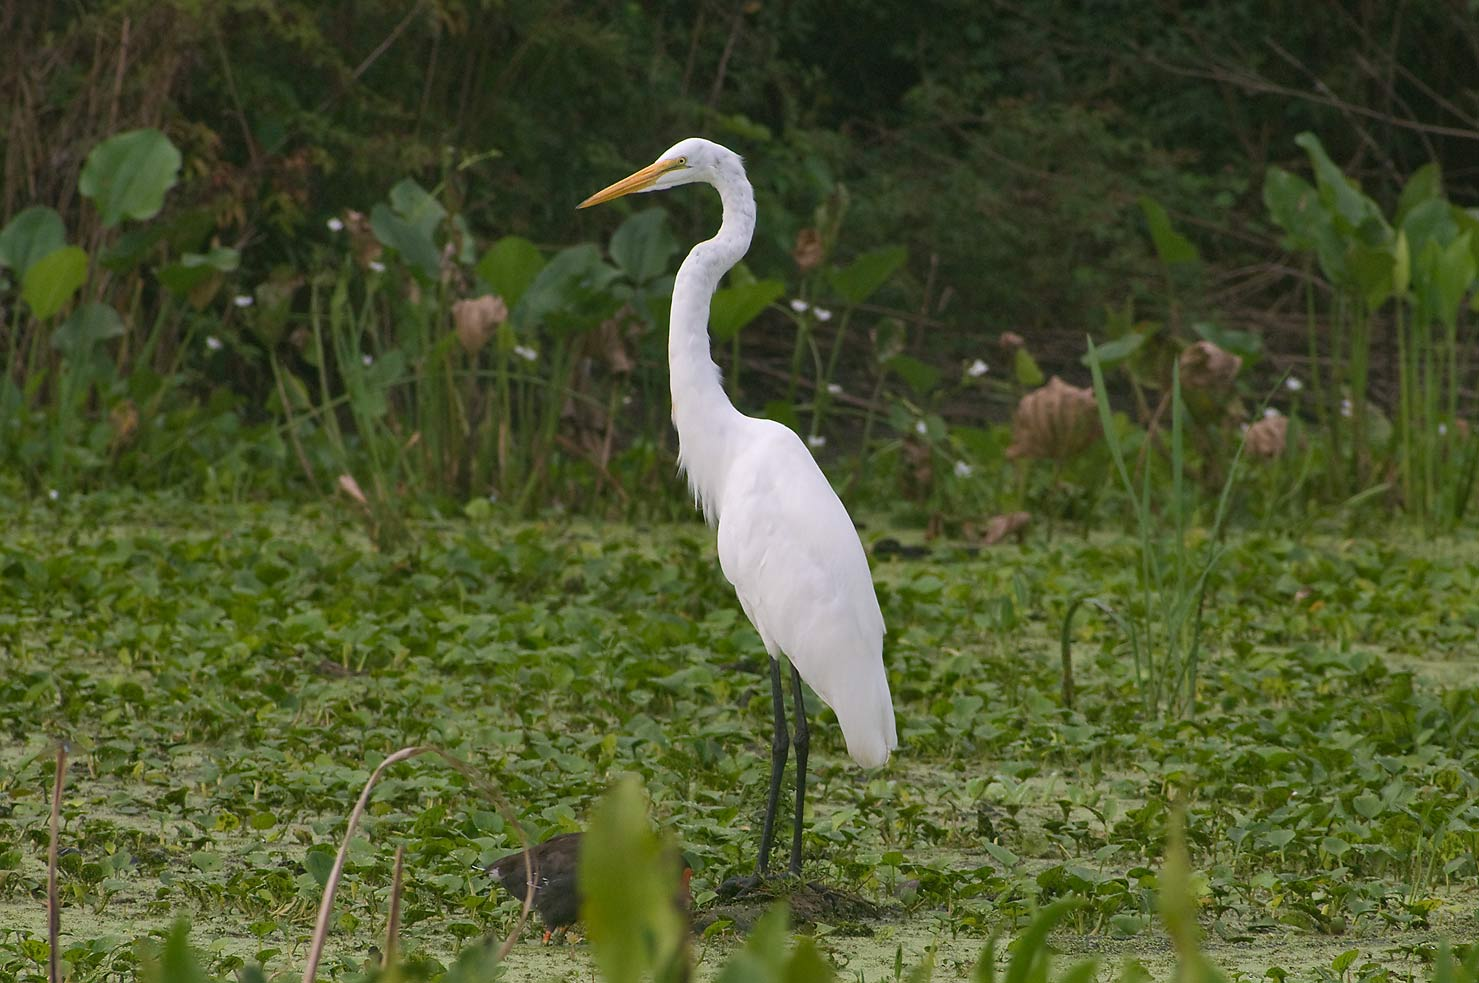 Great white egret (Ardea alba) from Spillway...Bend State Park. Needville, Texas